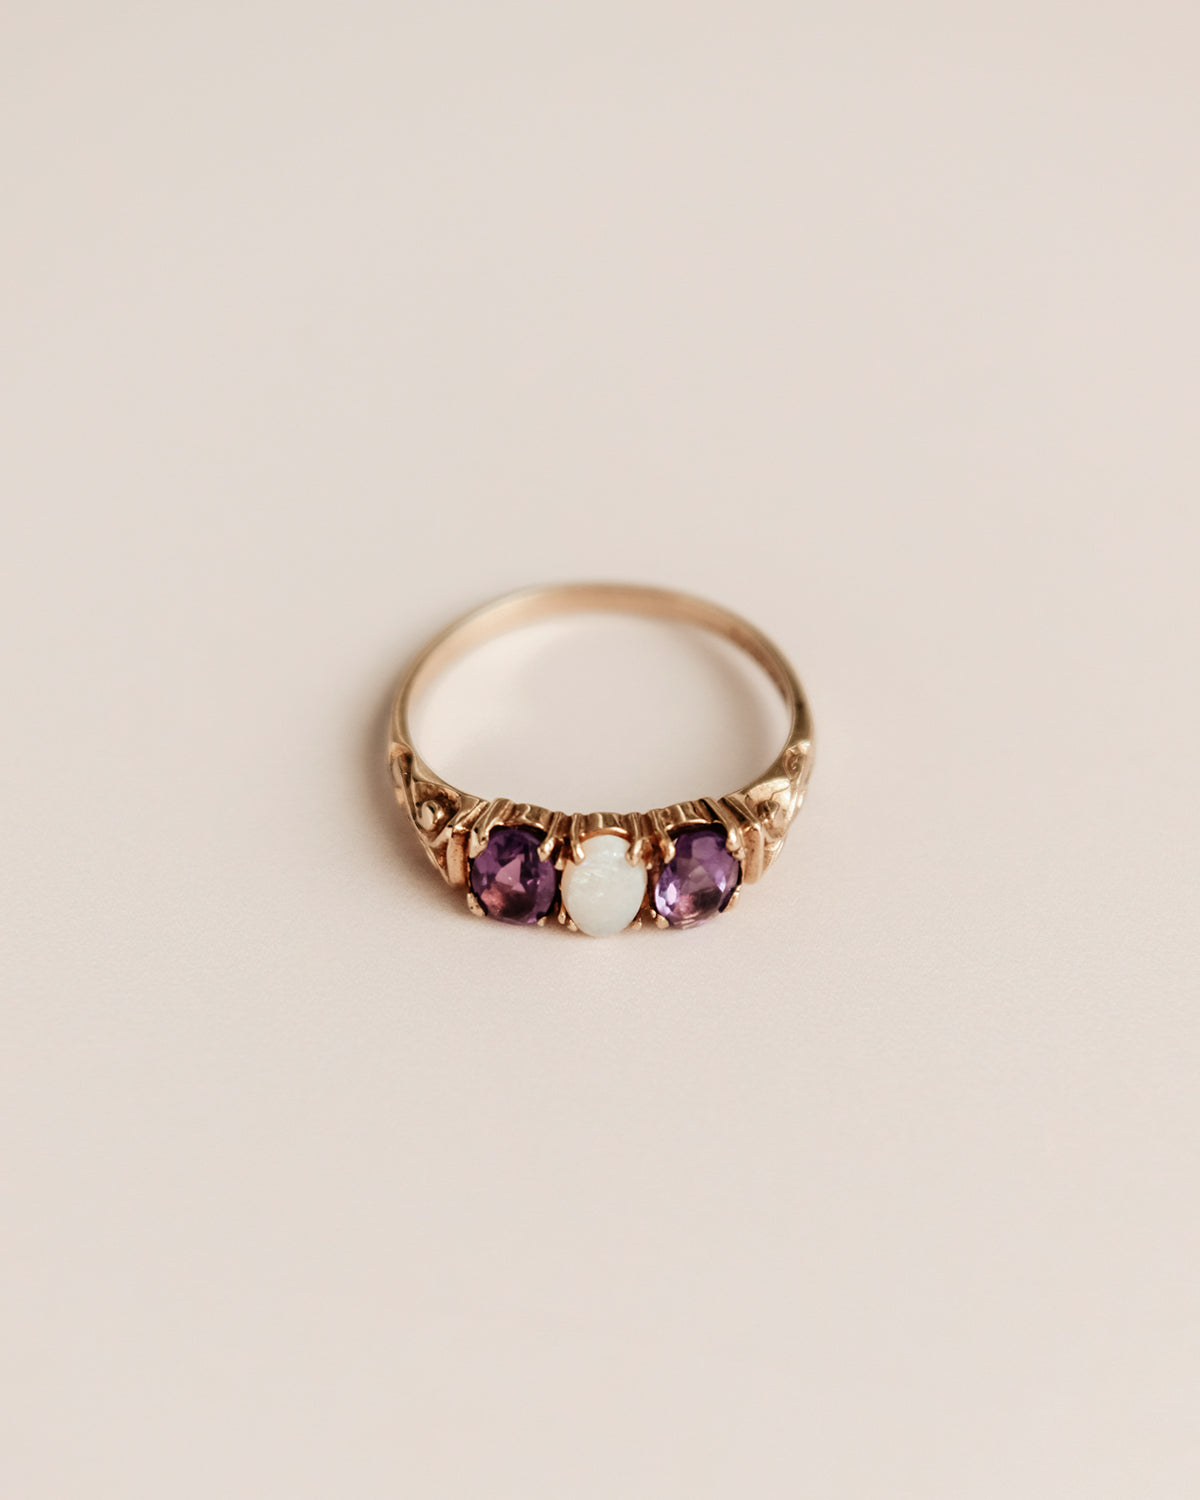 Image of Erin 9ct Gold Opal & Amethyst Ring